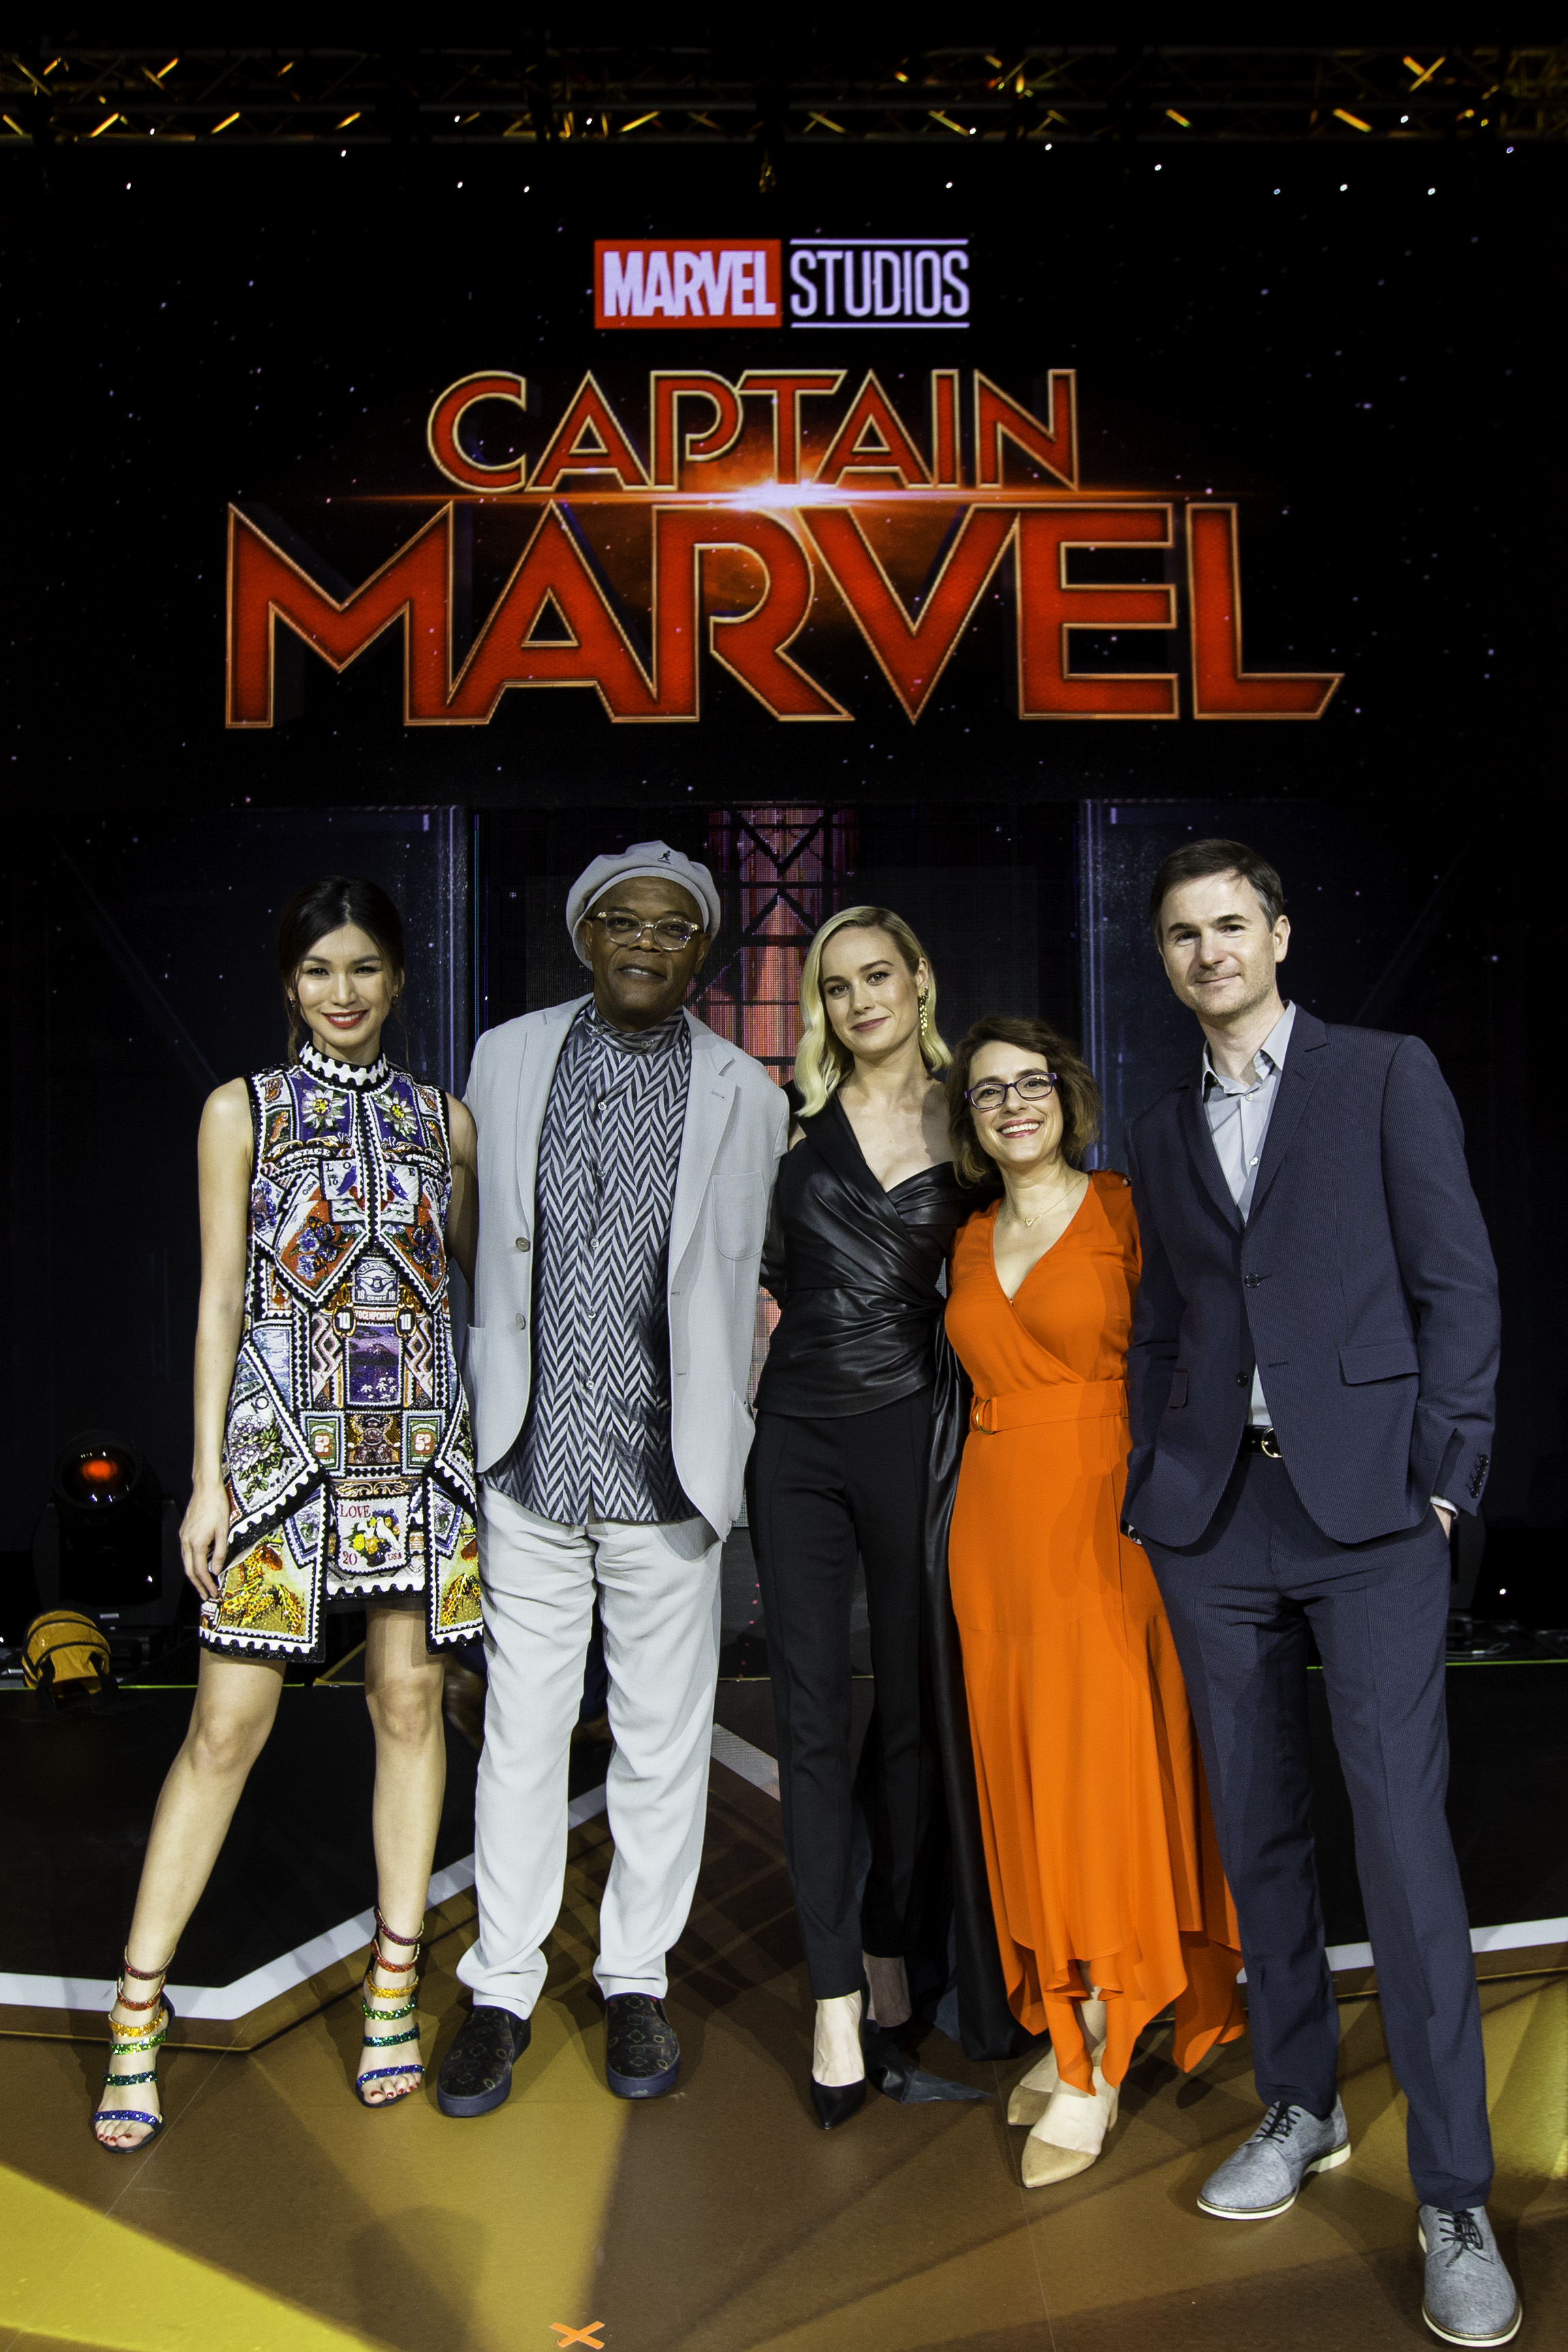 Capitana Marvel en su Fan Event y Conferencia de Prensa en Singapore.